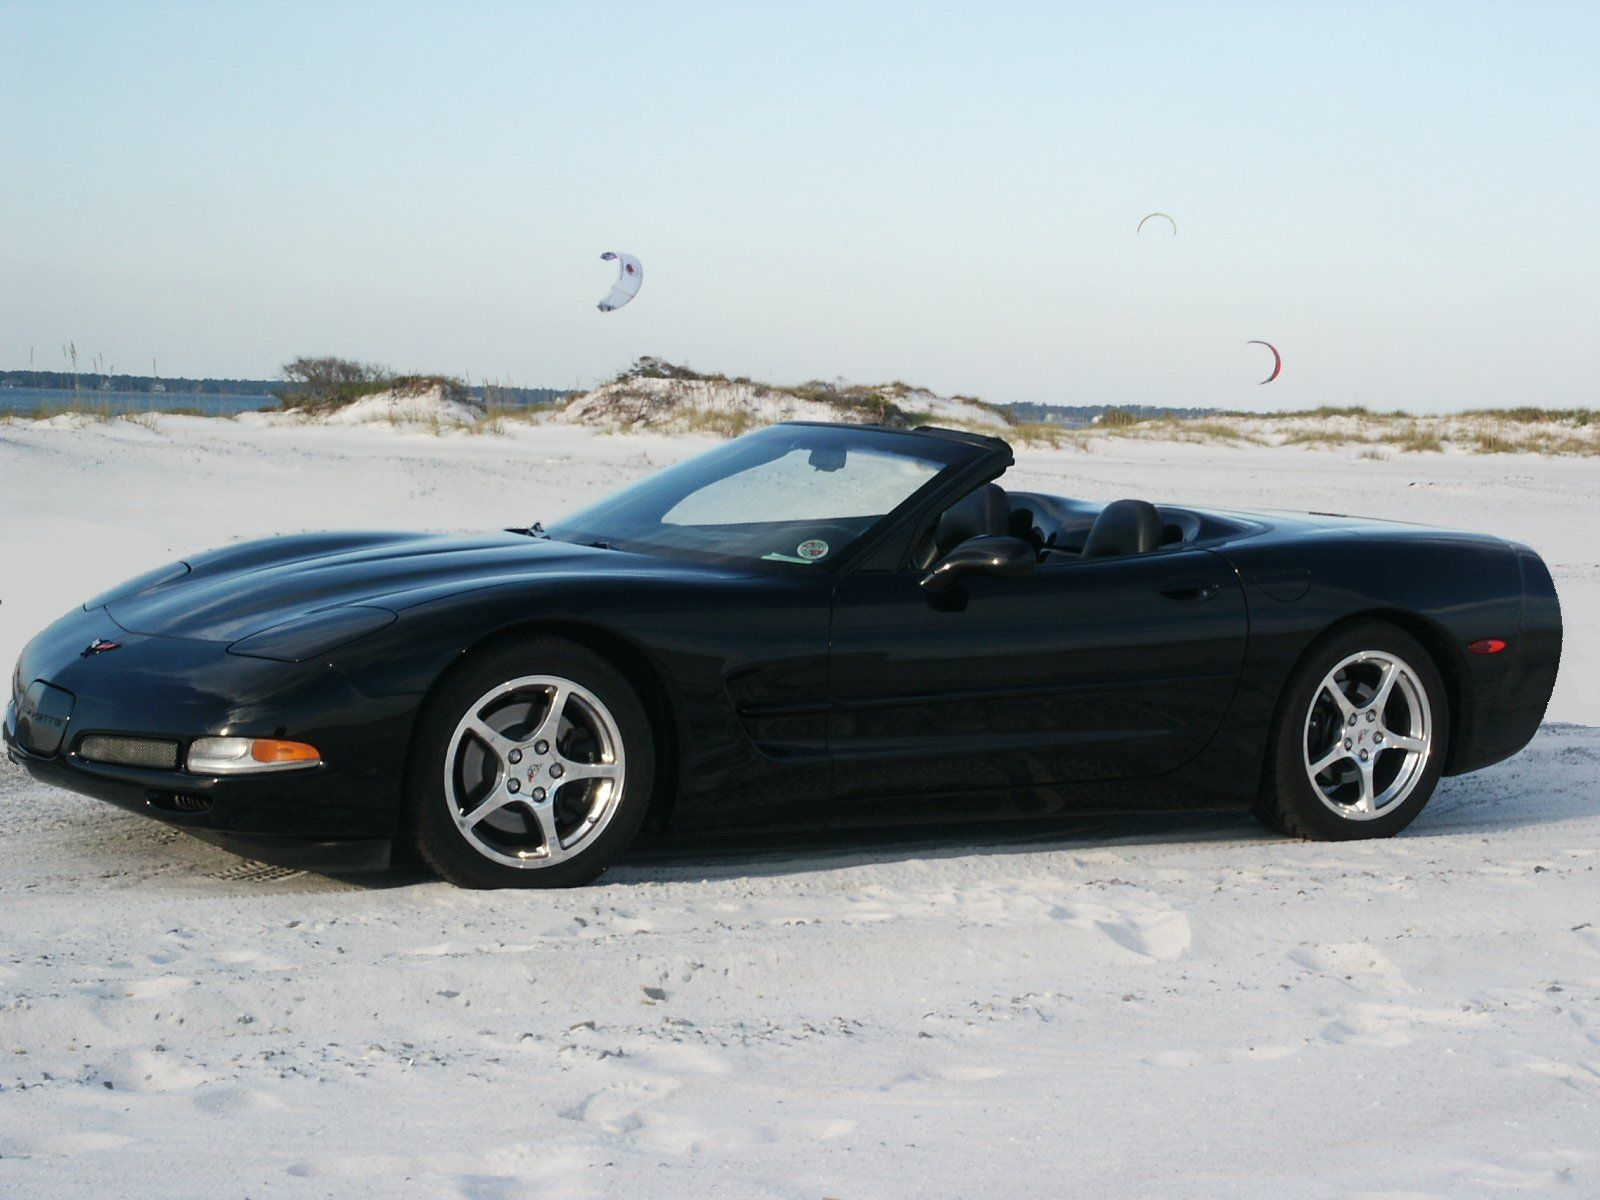 2000 chevrolet corvette convertible corvette u s a 1. Black Bedroom Furniture Sets. Home Design Ideas